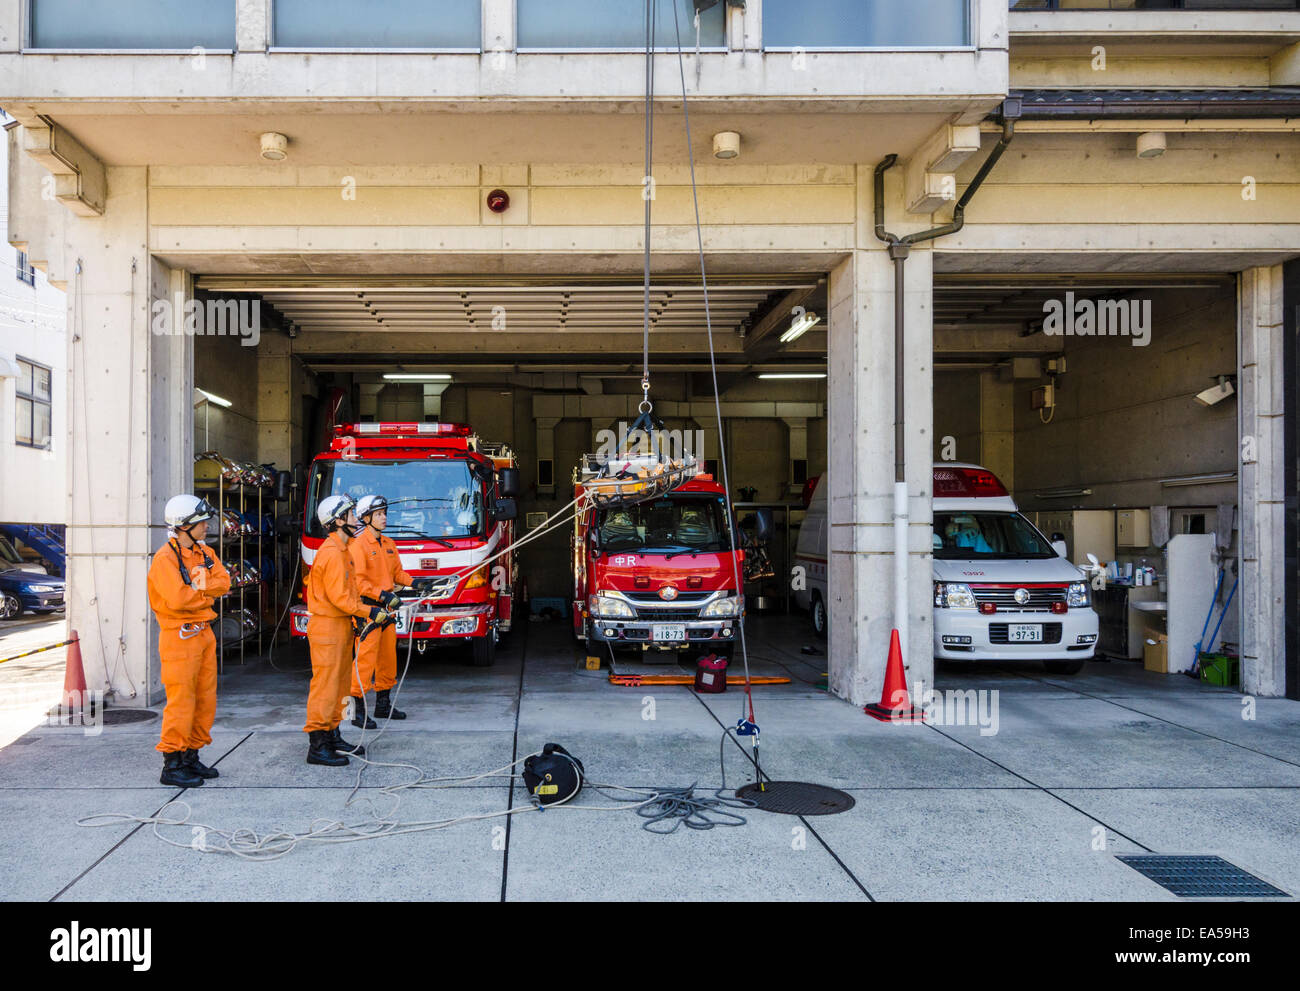 Kyoto Firemen training outside their fire station, Kyoto Japan - Stock Image